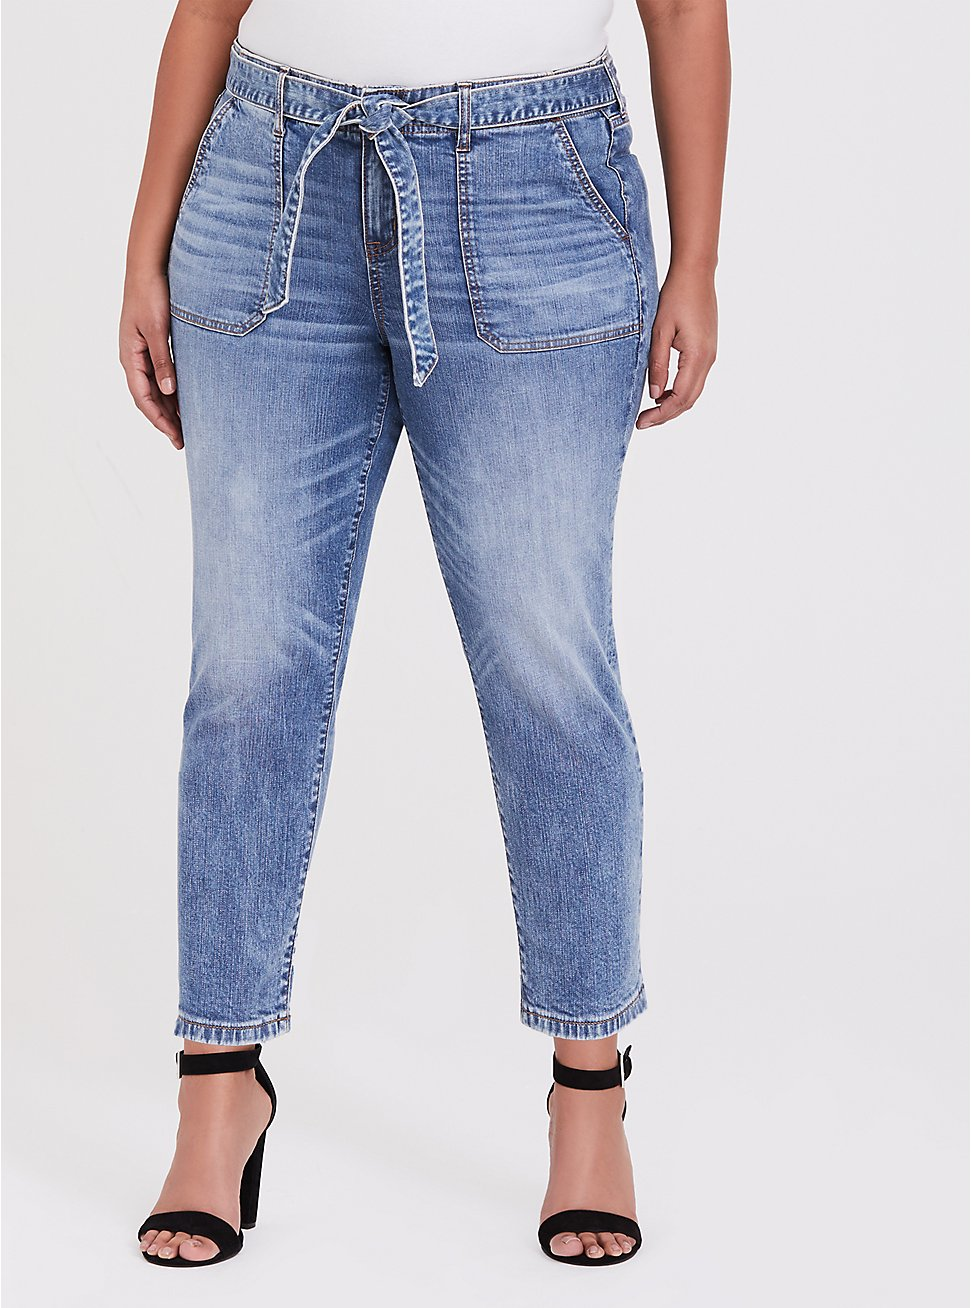 Mid Rise Straight Jean- Vintage Stretch Light Wash with Sash, , hi-res